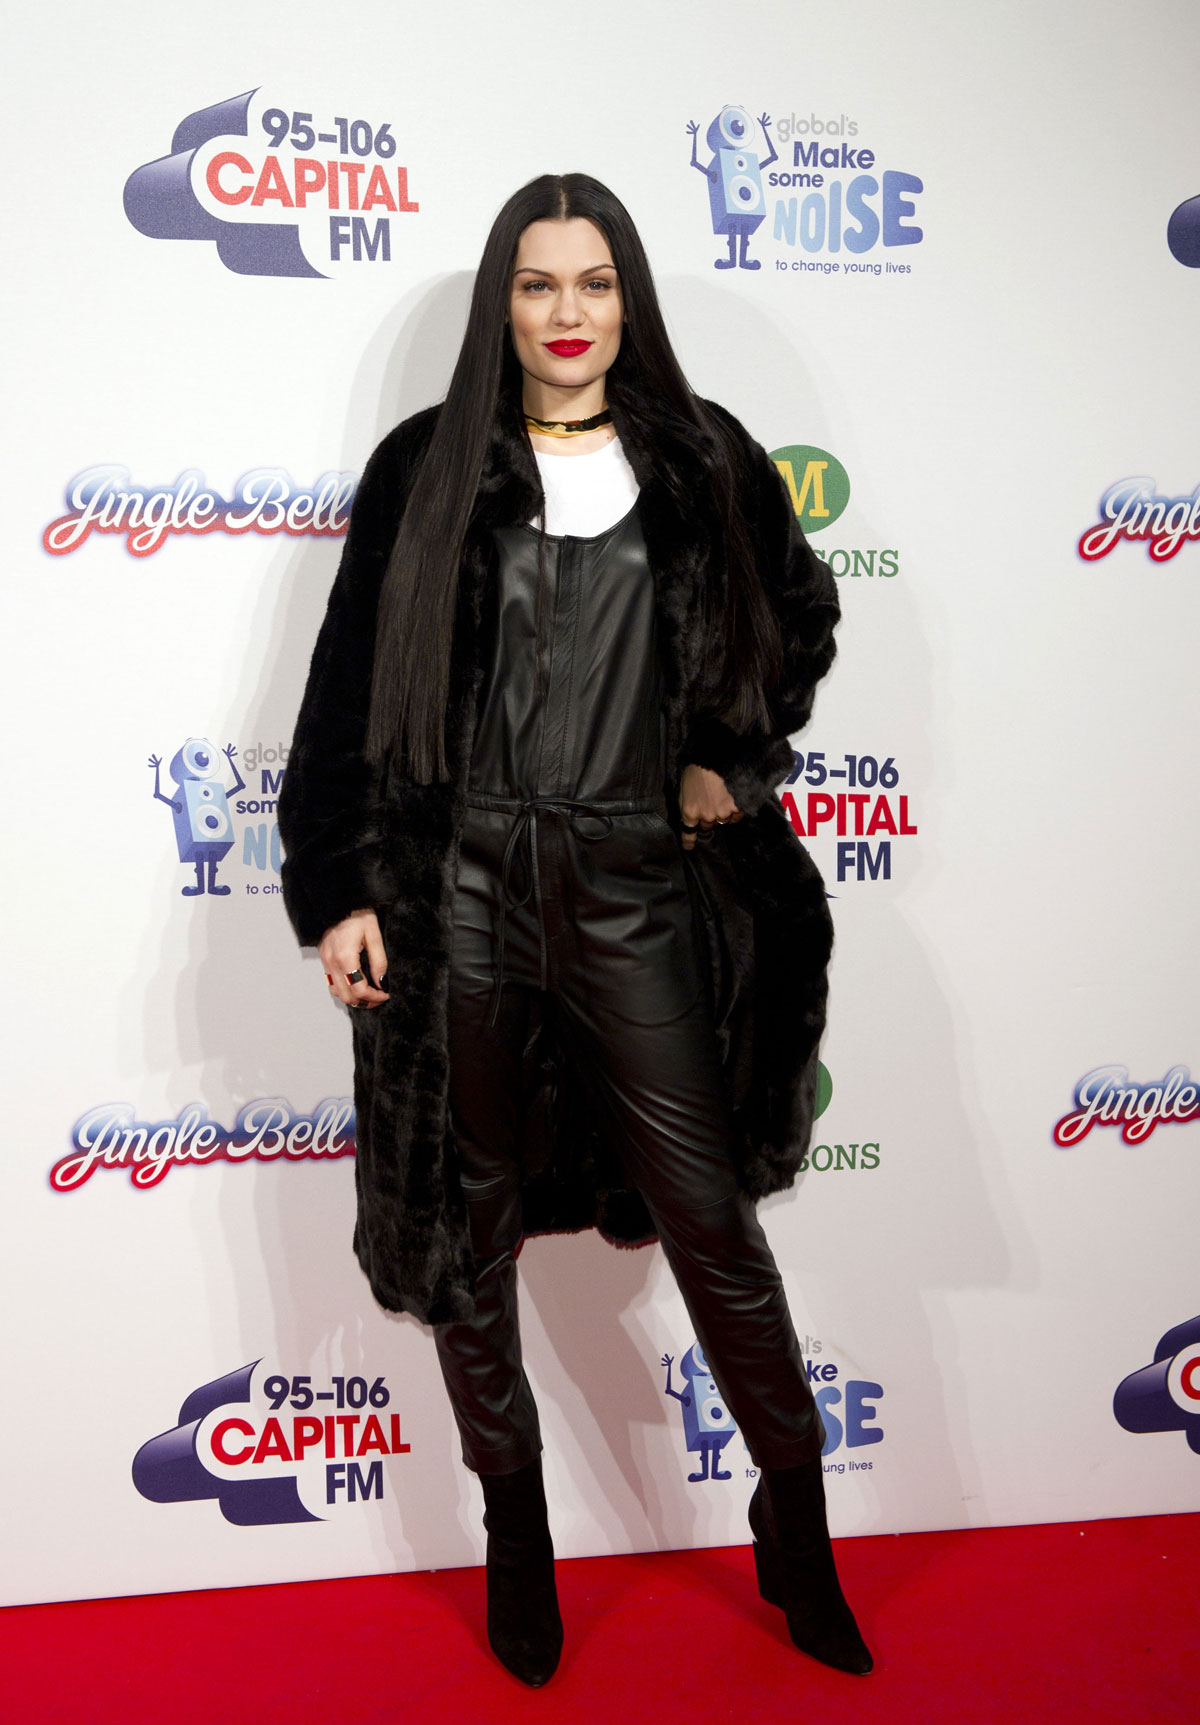 Jessie J attends Jingle Bell Ball day 2